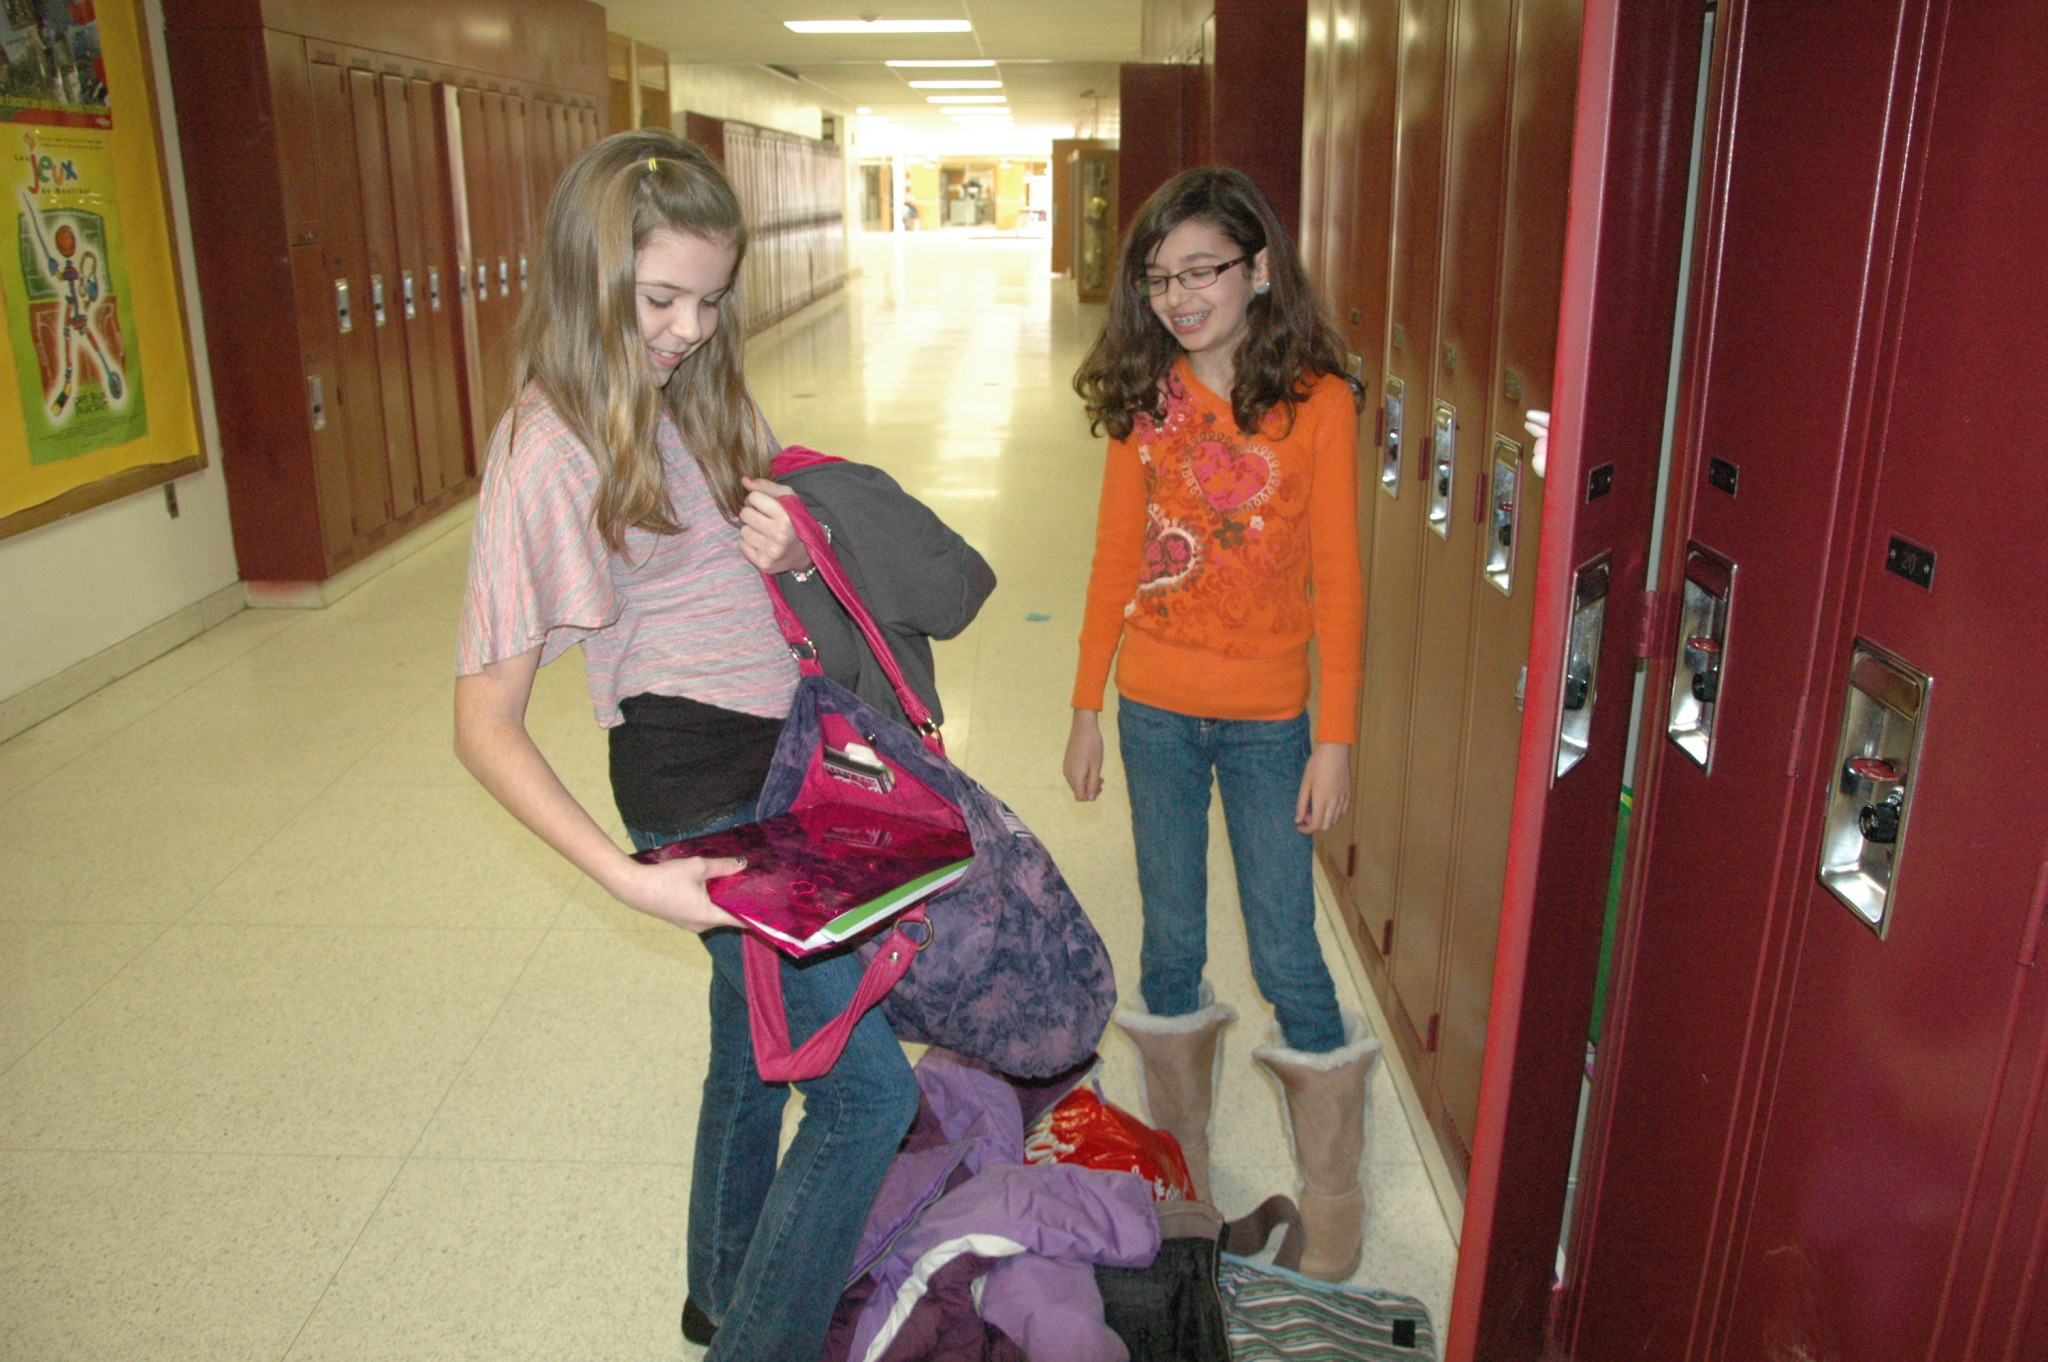 Shadow for a day: Sixth-graders get a look at life in grade 7